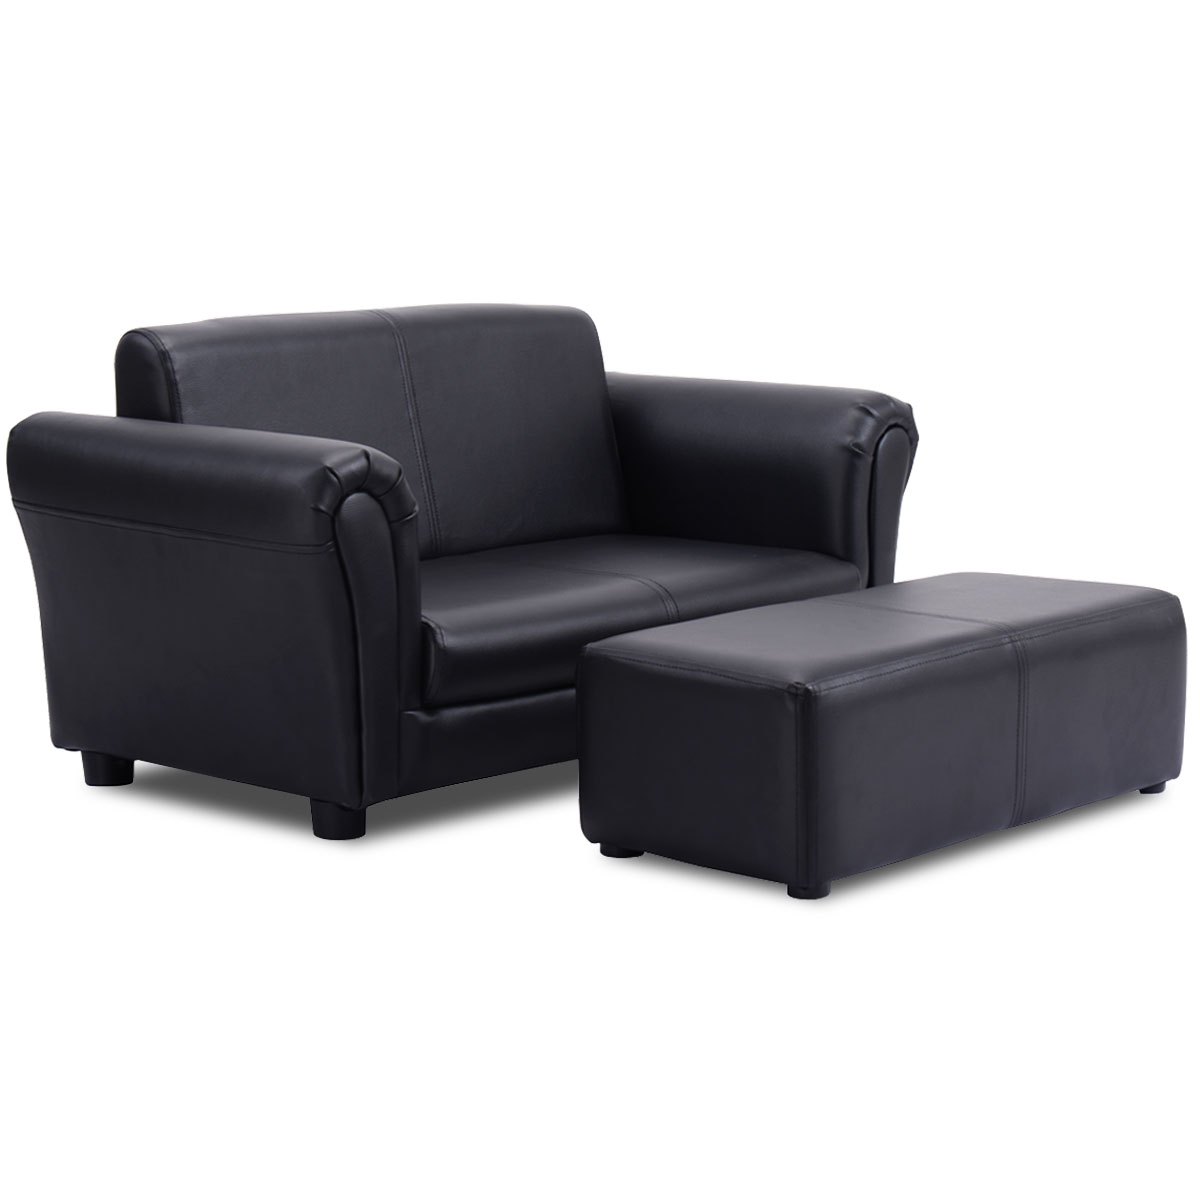 Great Costway Kids Sofa Armrest Chair Couch Lounge In Black